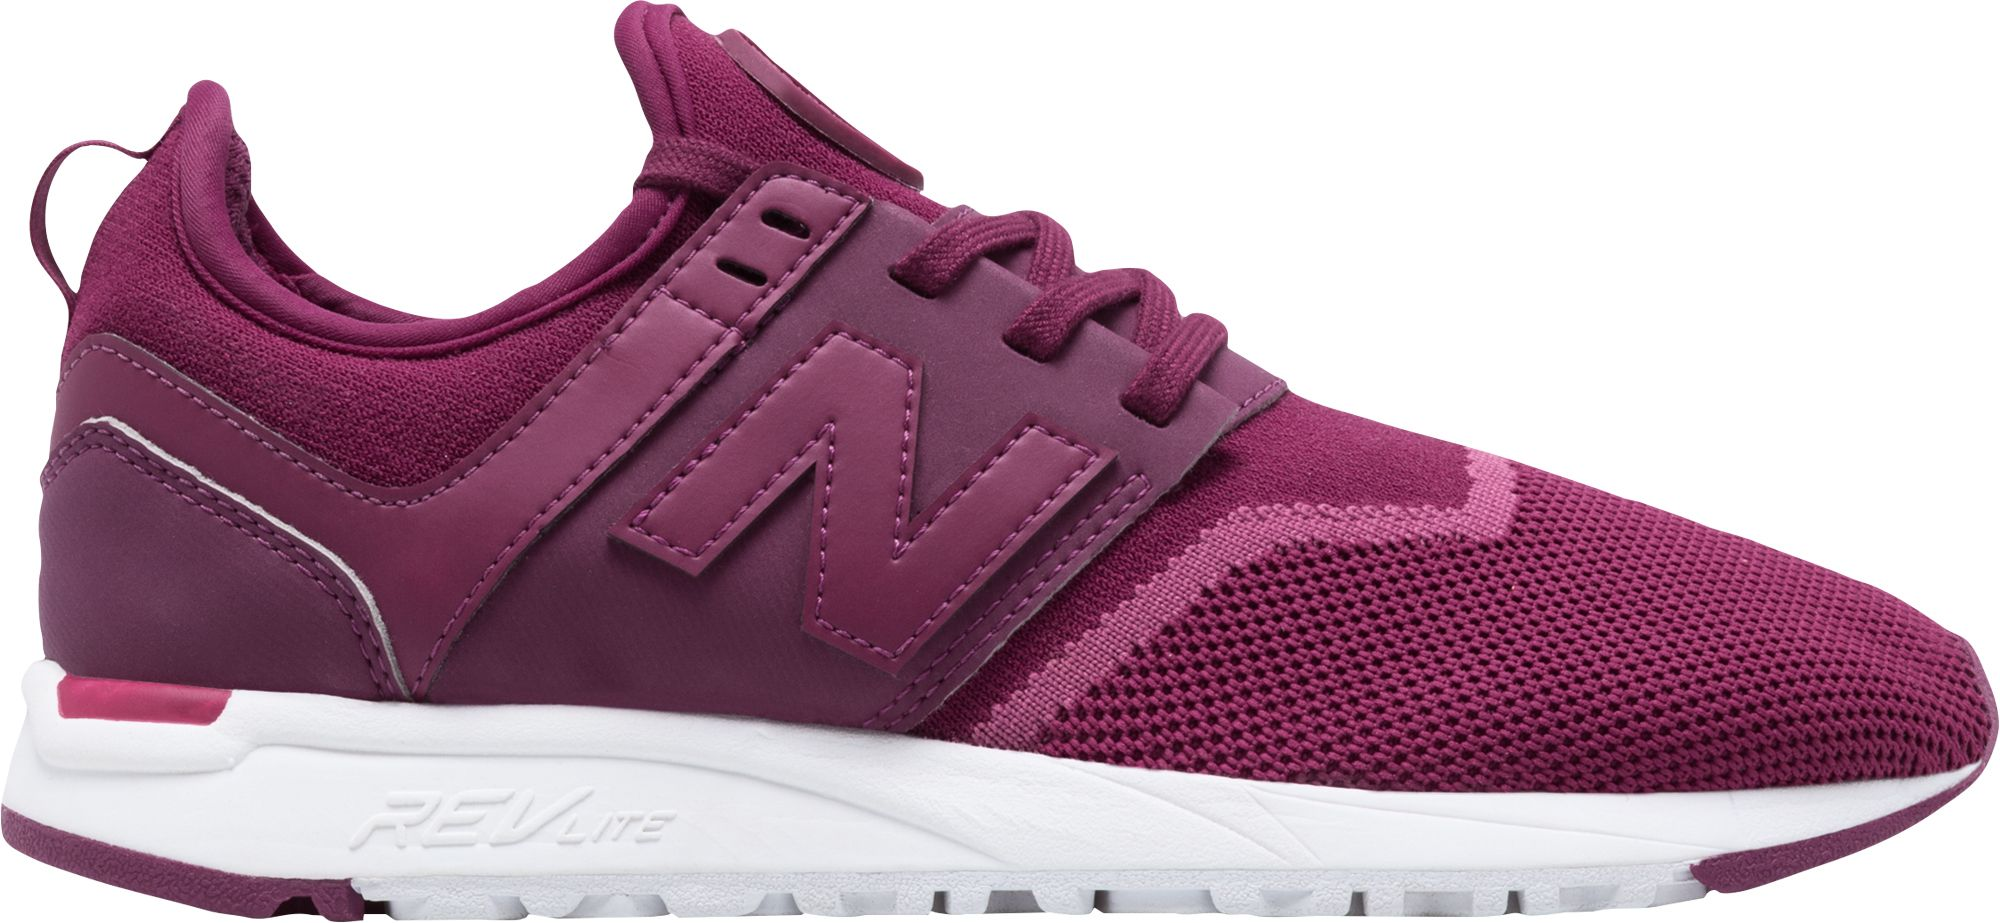 new balance women's 247 shoes